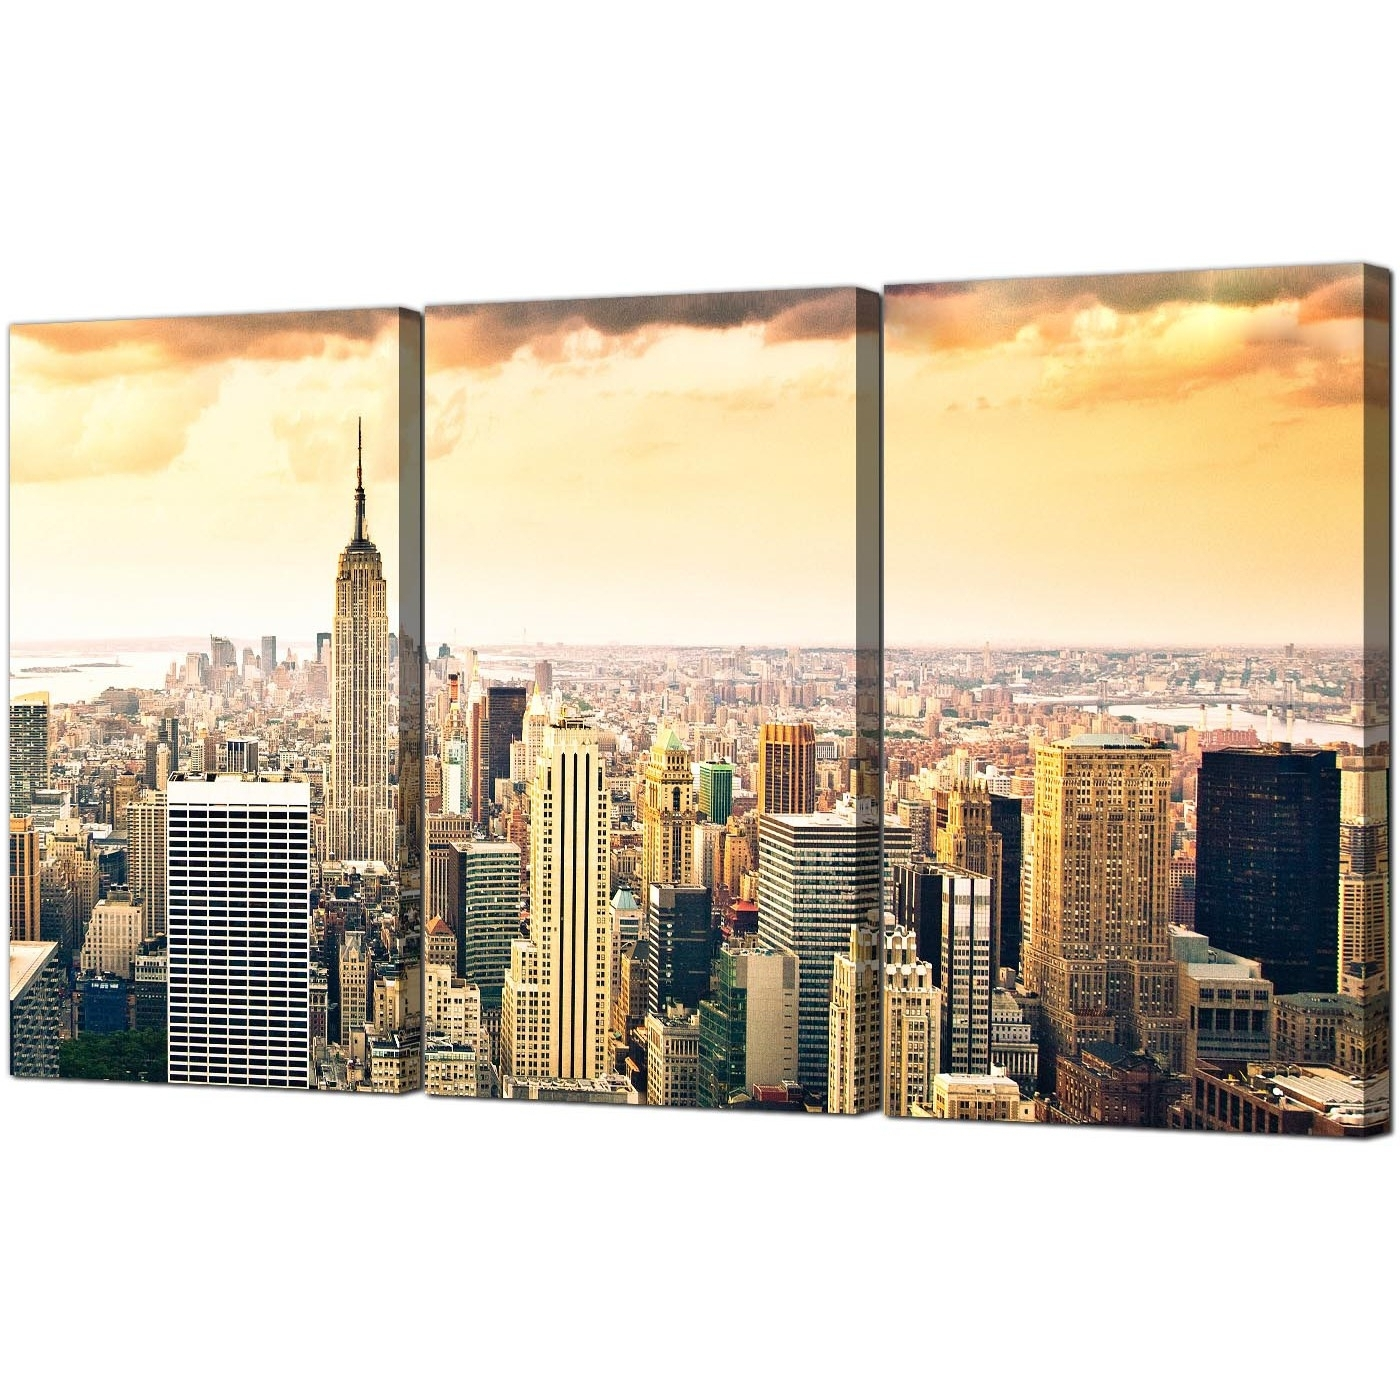 Image Gallery of New York City Canvas Wall Art (View 13 of 15 Photos)